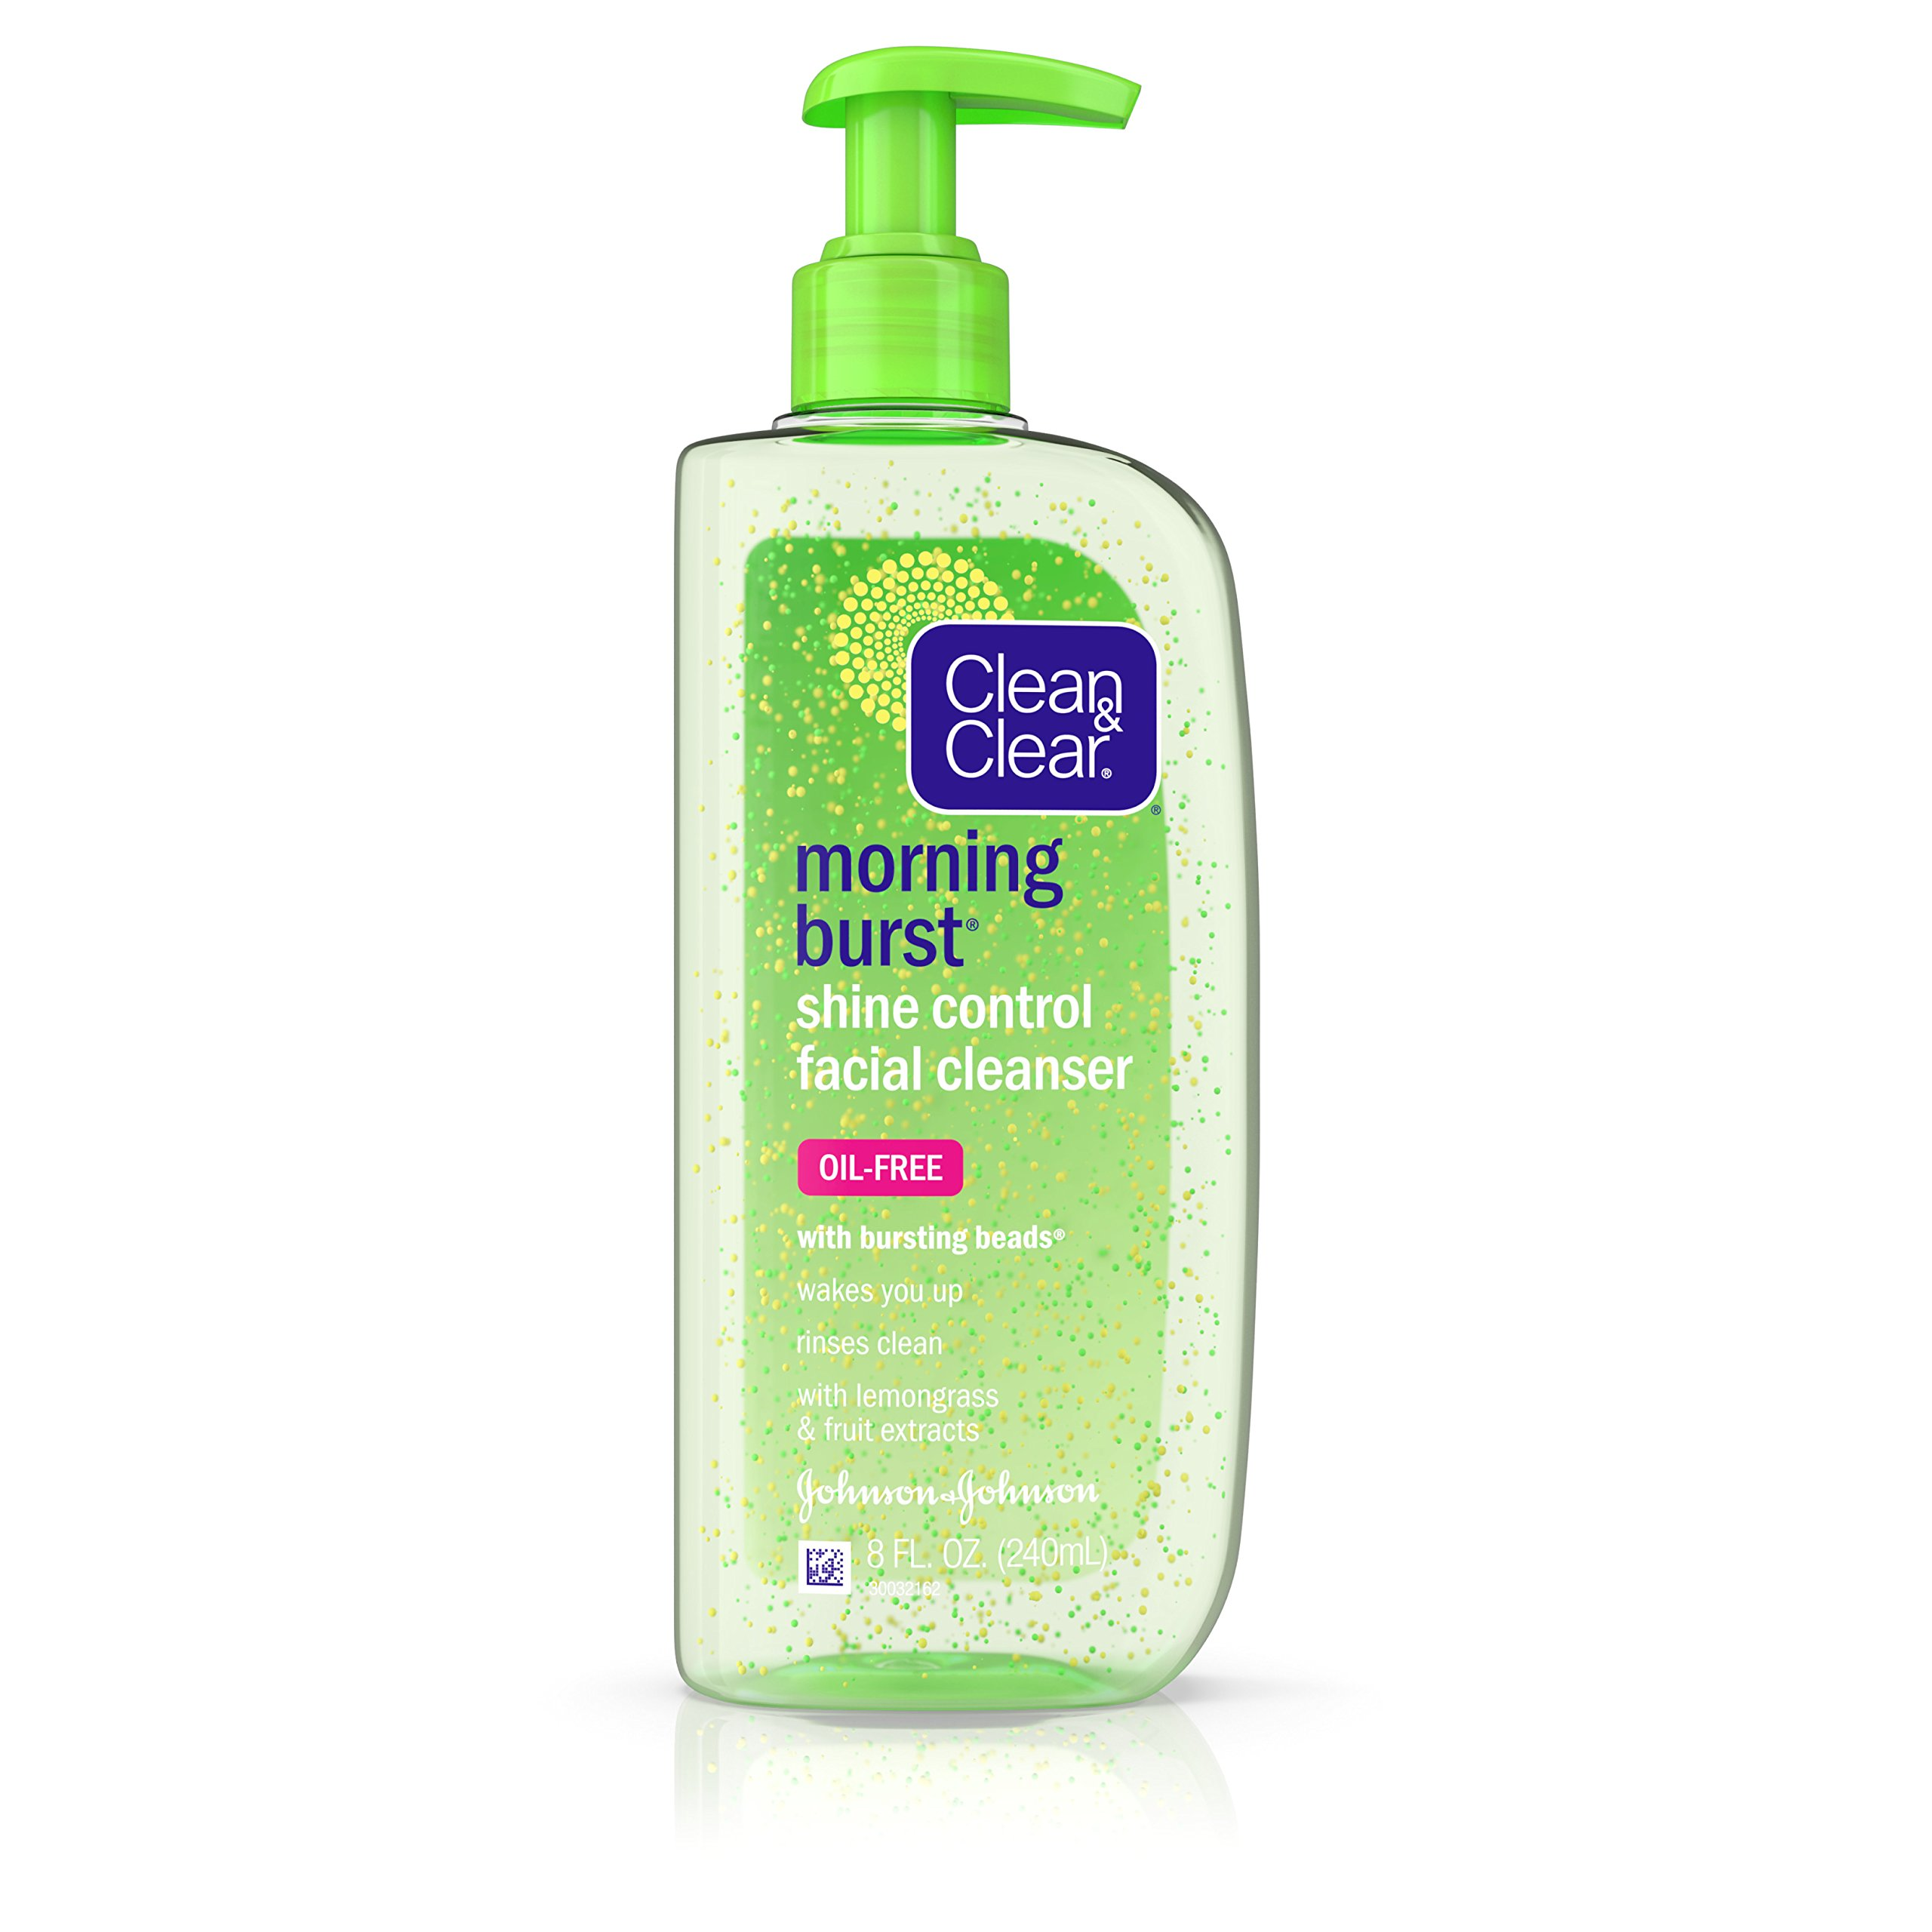 Clean & Clear Morning Burst Shine Control Facial Cleanser, 8 Oz.